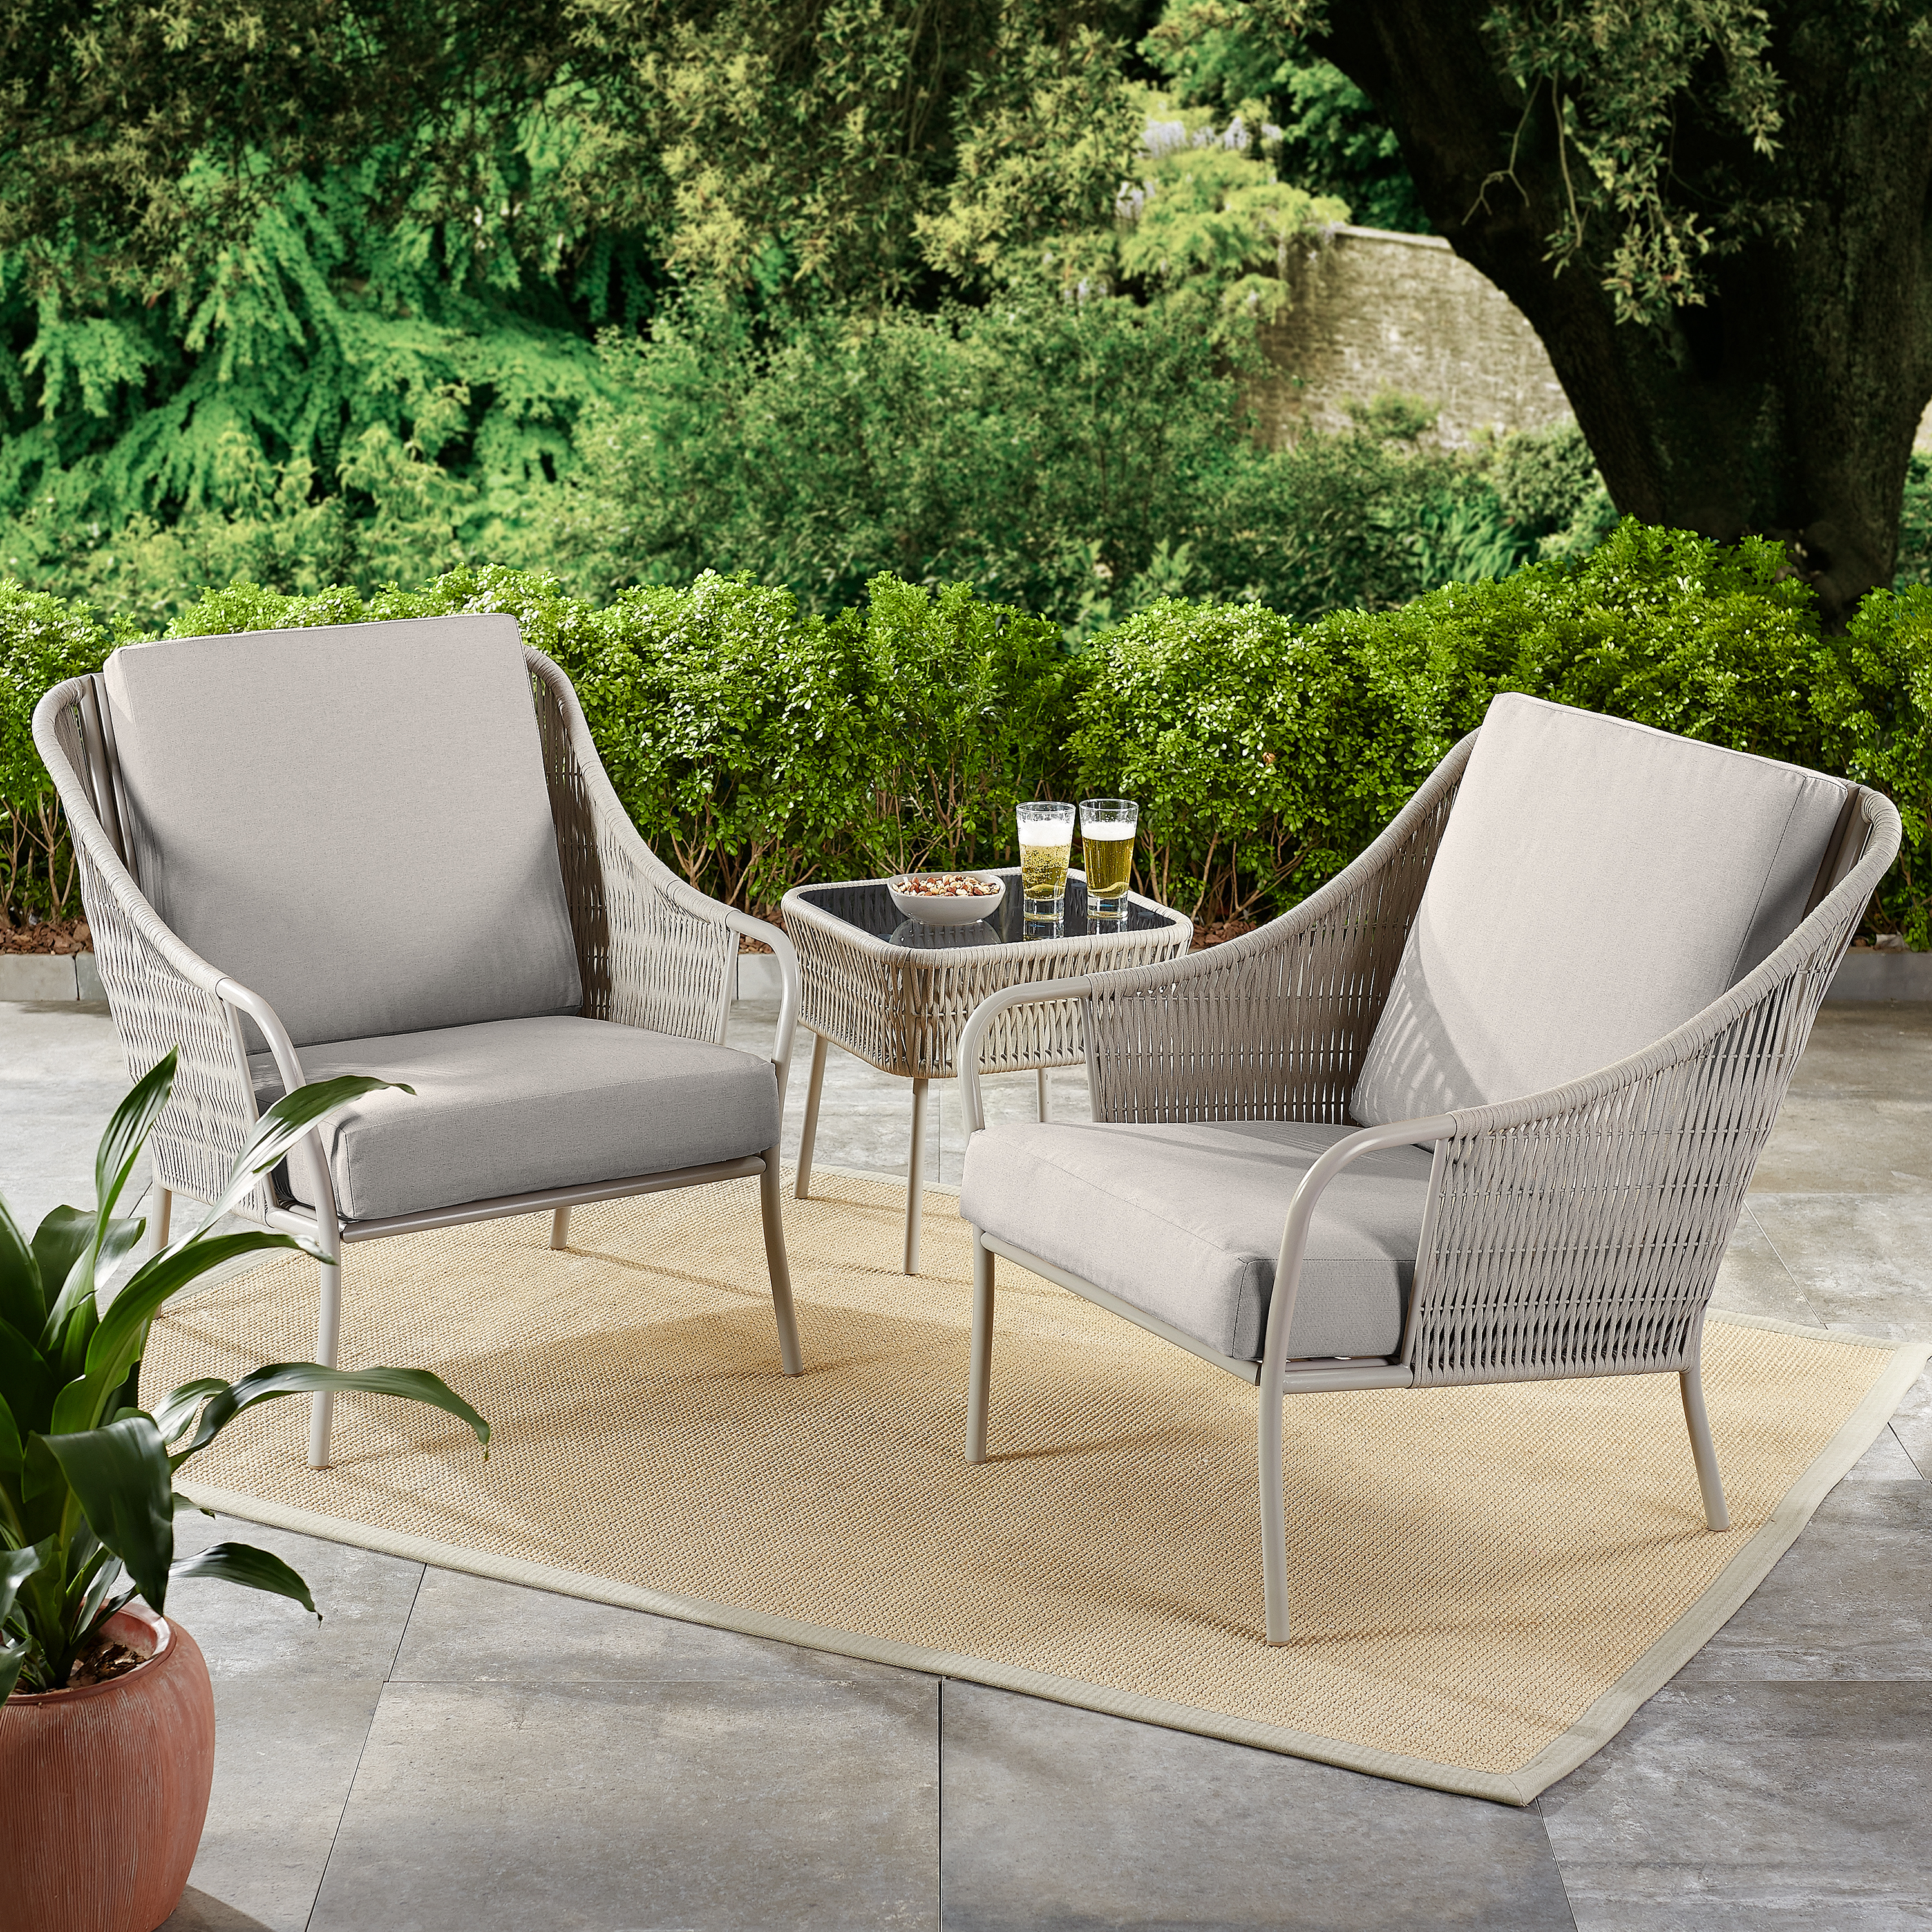 Patio Furniture Walmart regarding dimensions 3000 X 3000